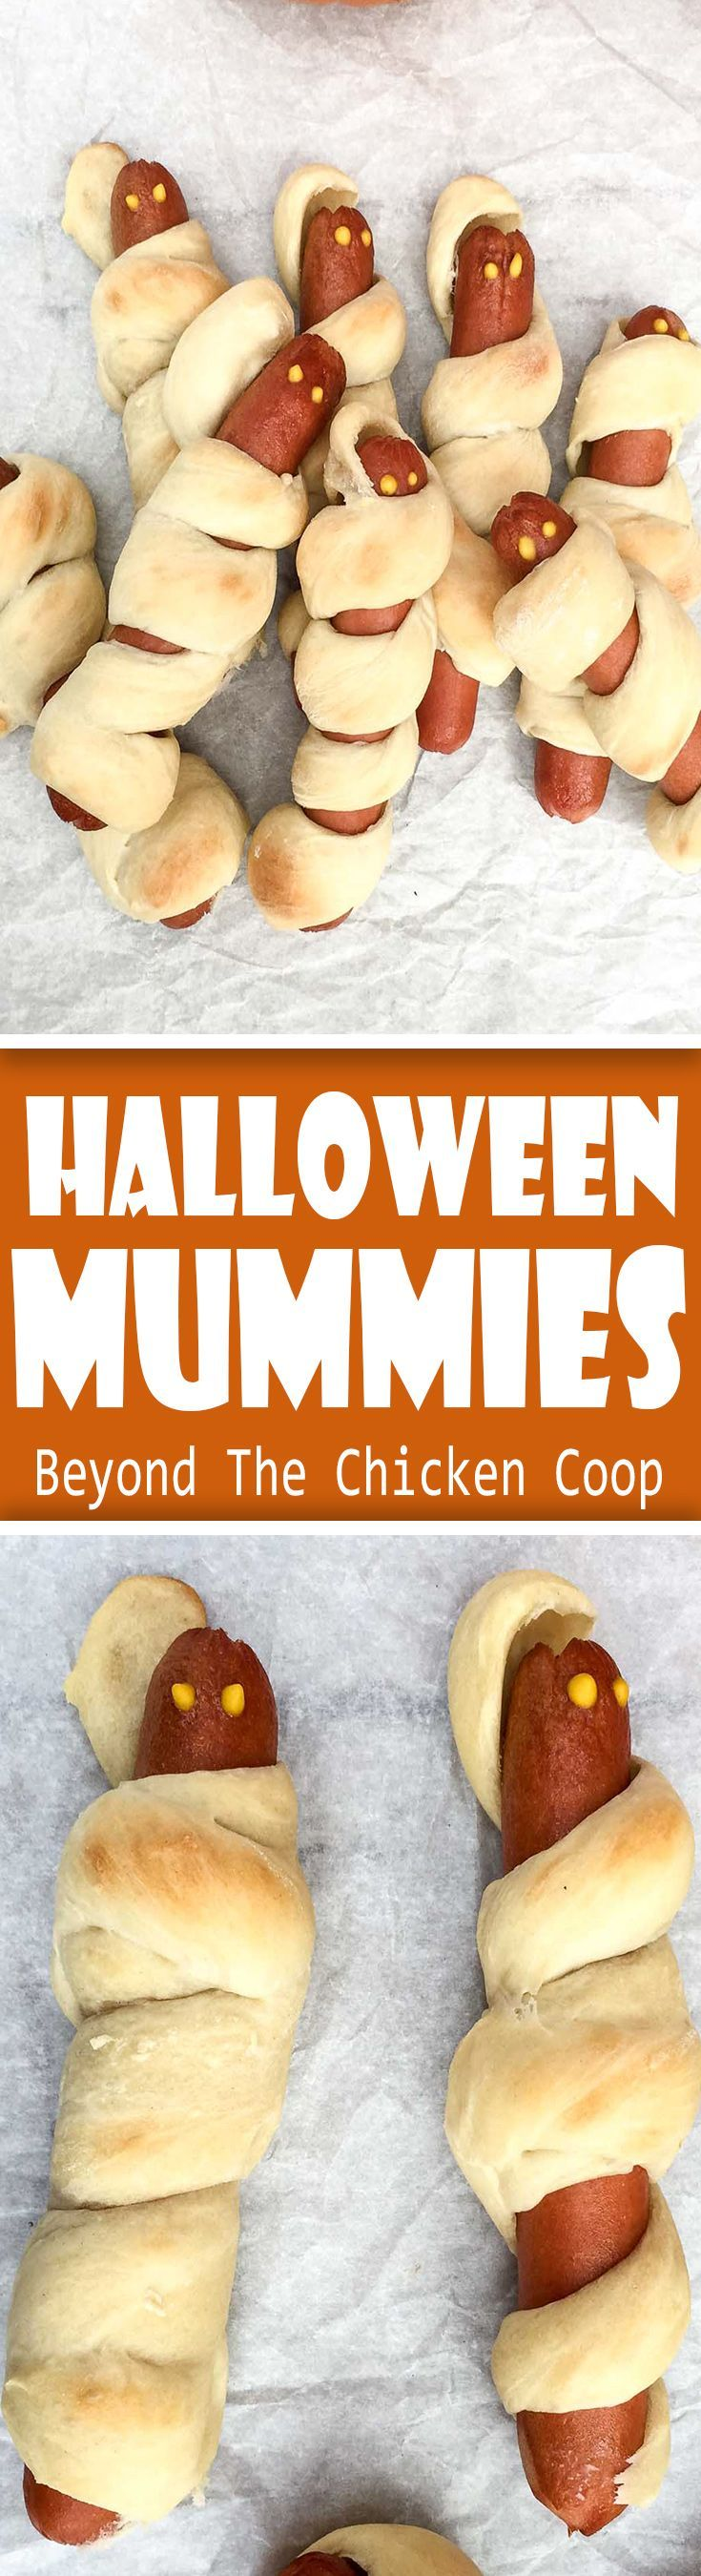 Halloween Mummies! Delightfully frightening treat made for kids of all ages!